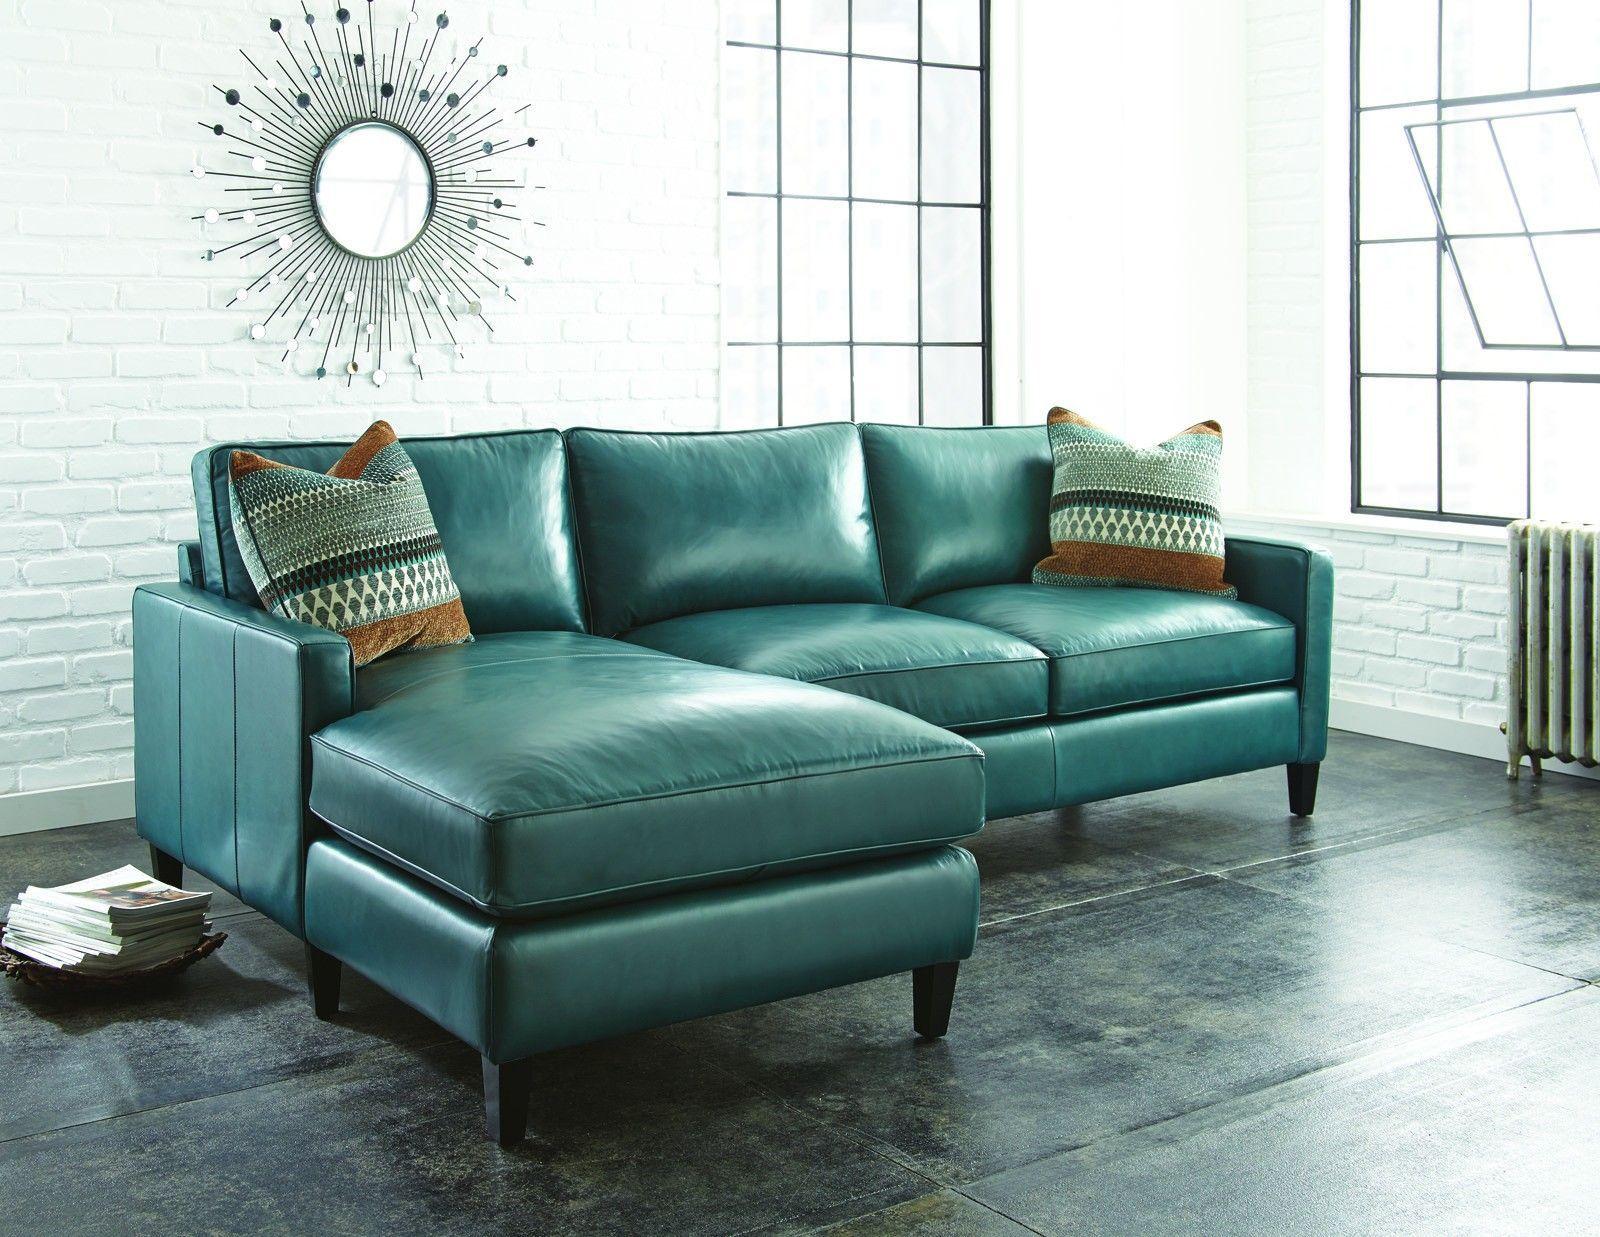 How To Reupholster Leather Furniture In 5 Easy Steps Blue